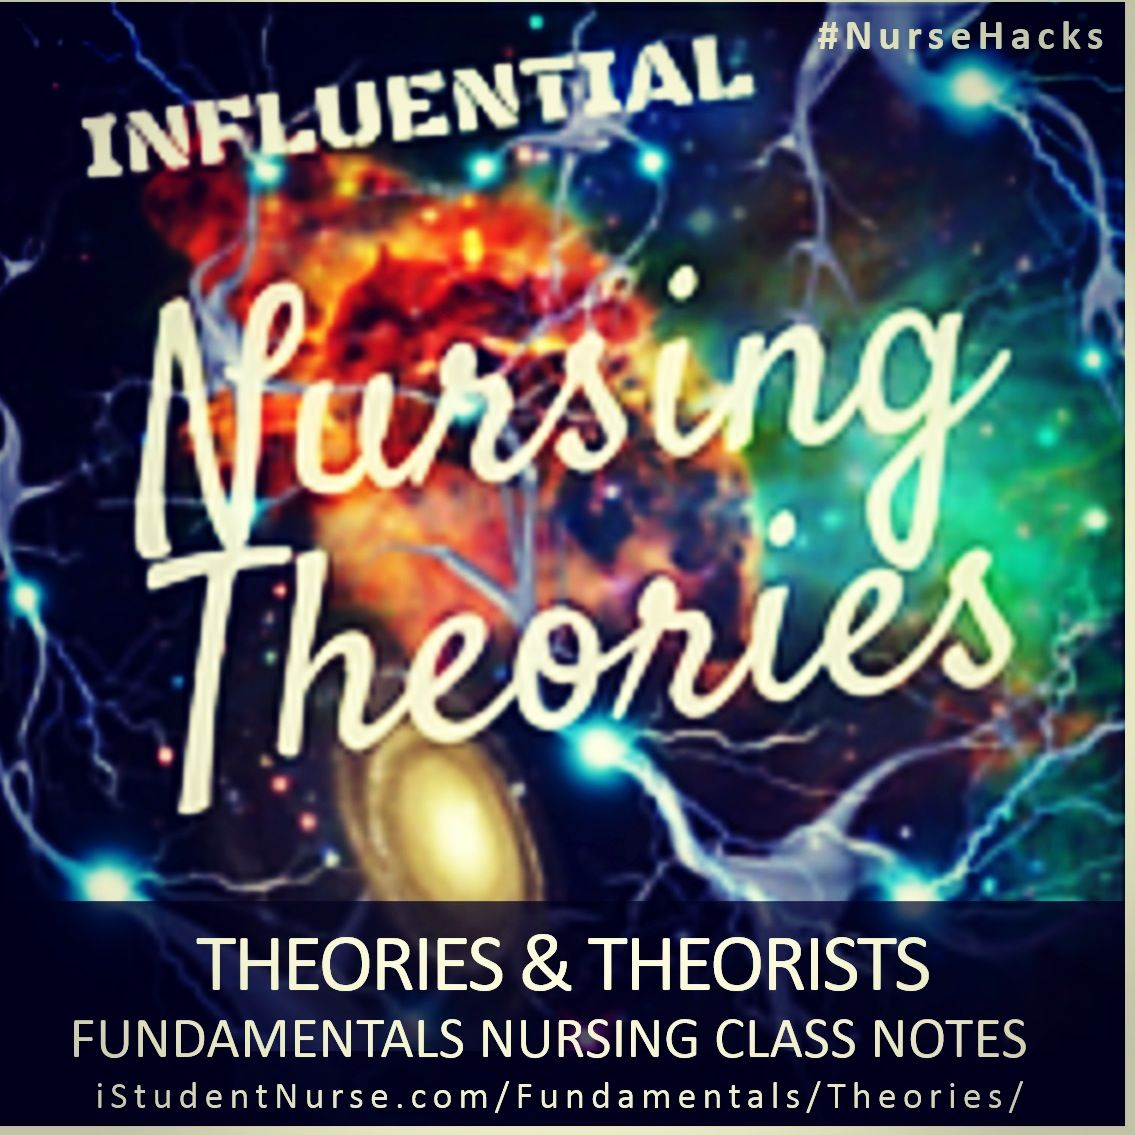 Theories & Theorists that Influence Nursing Practice